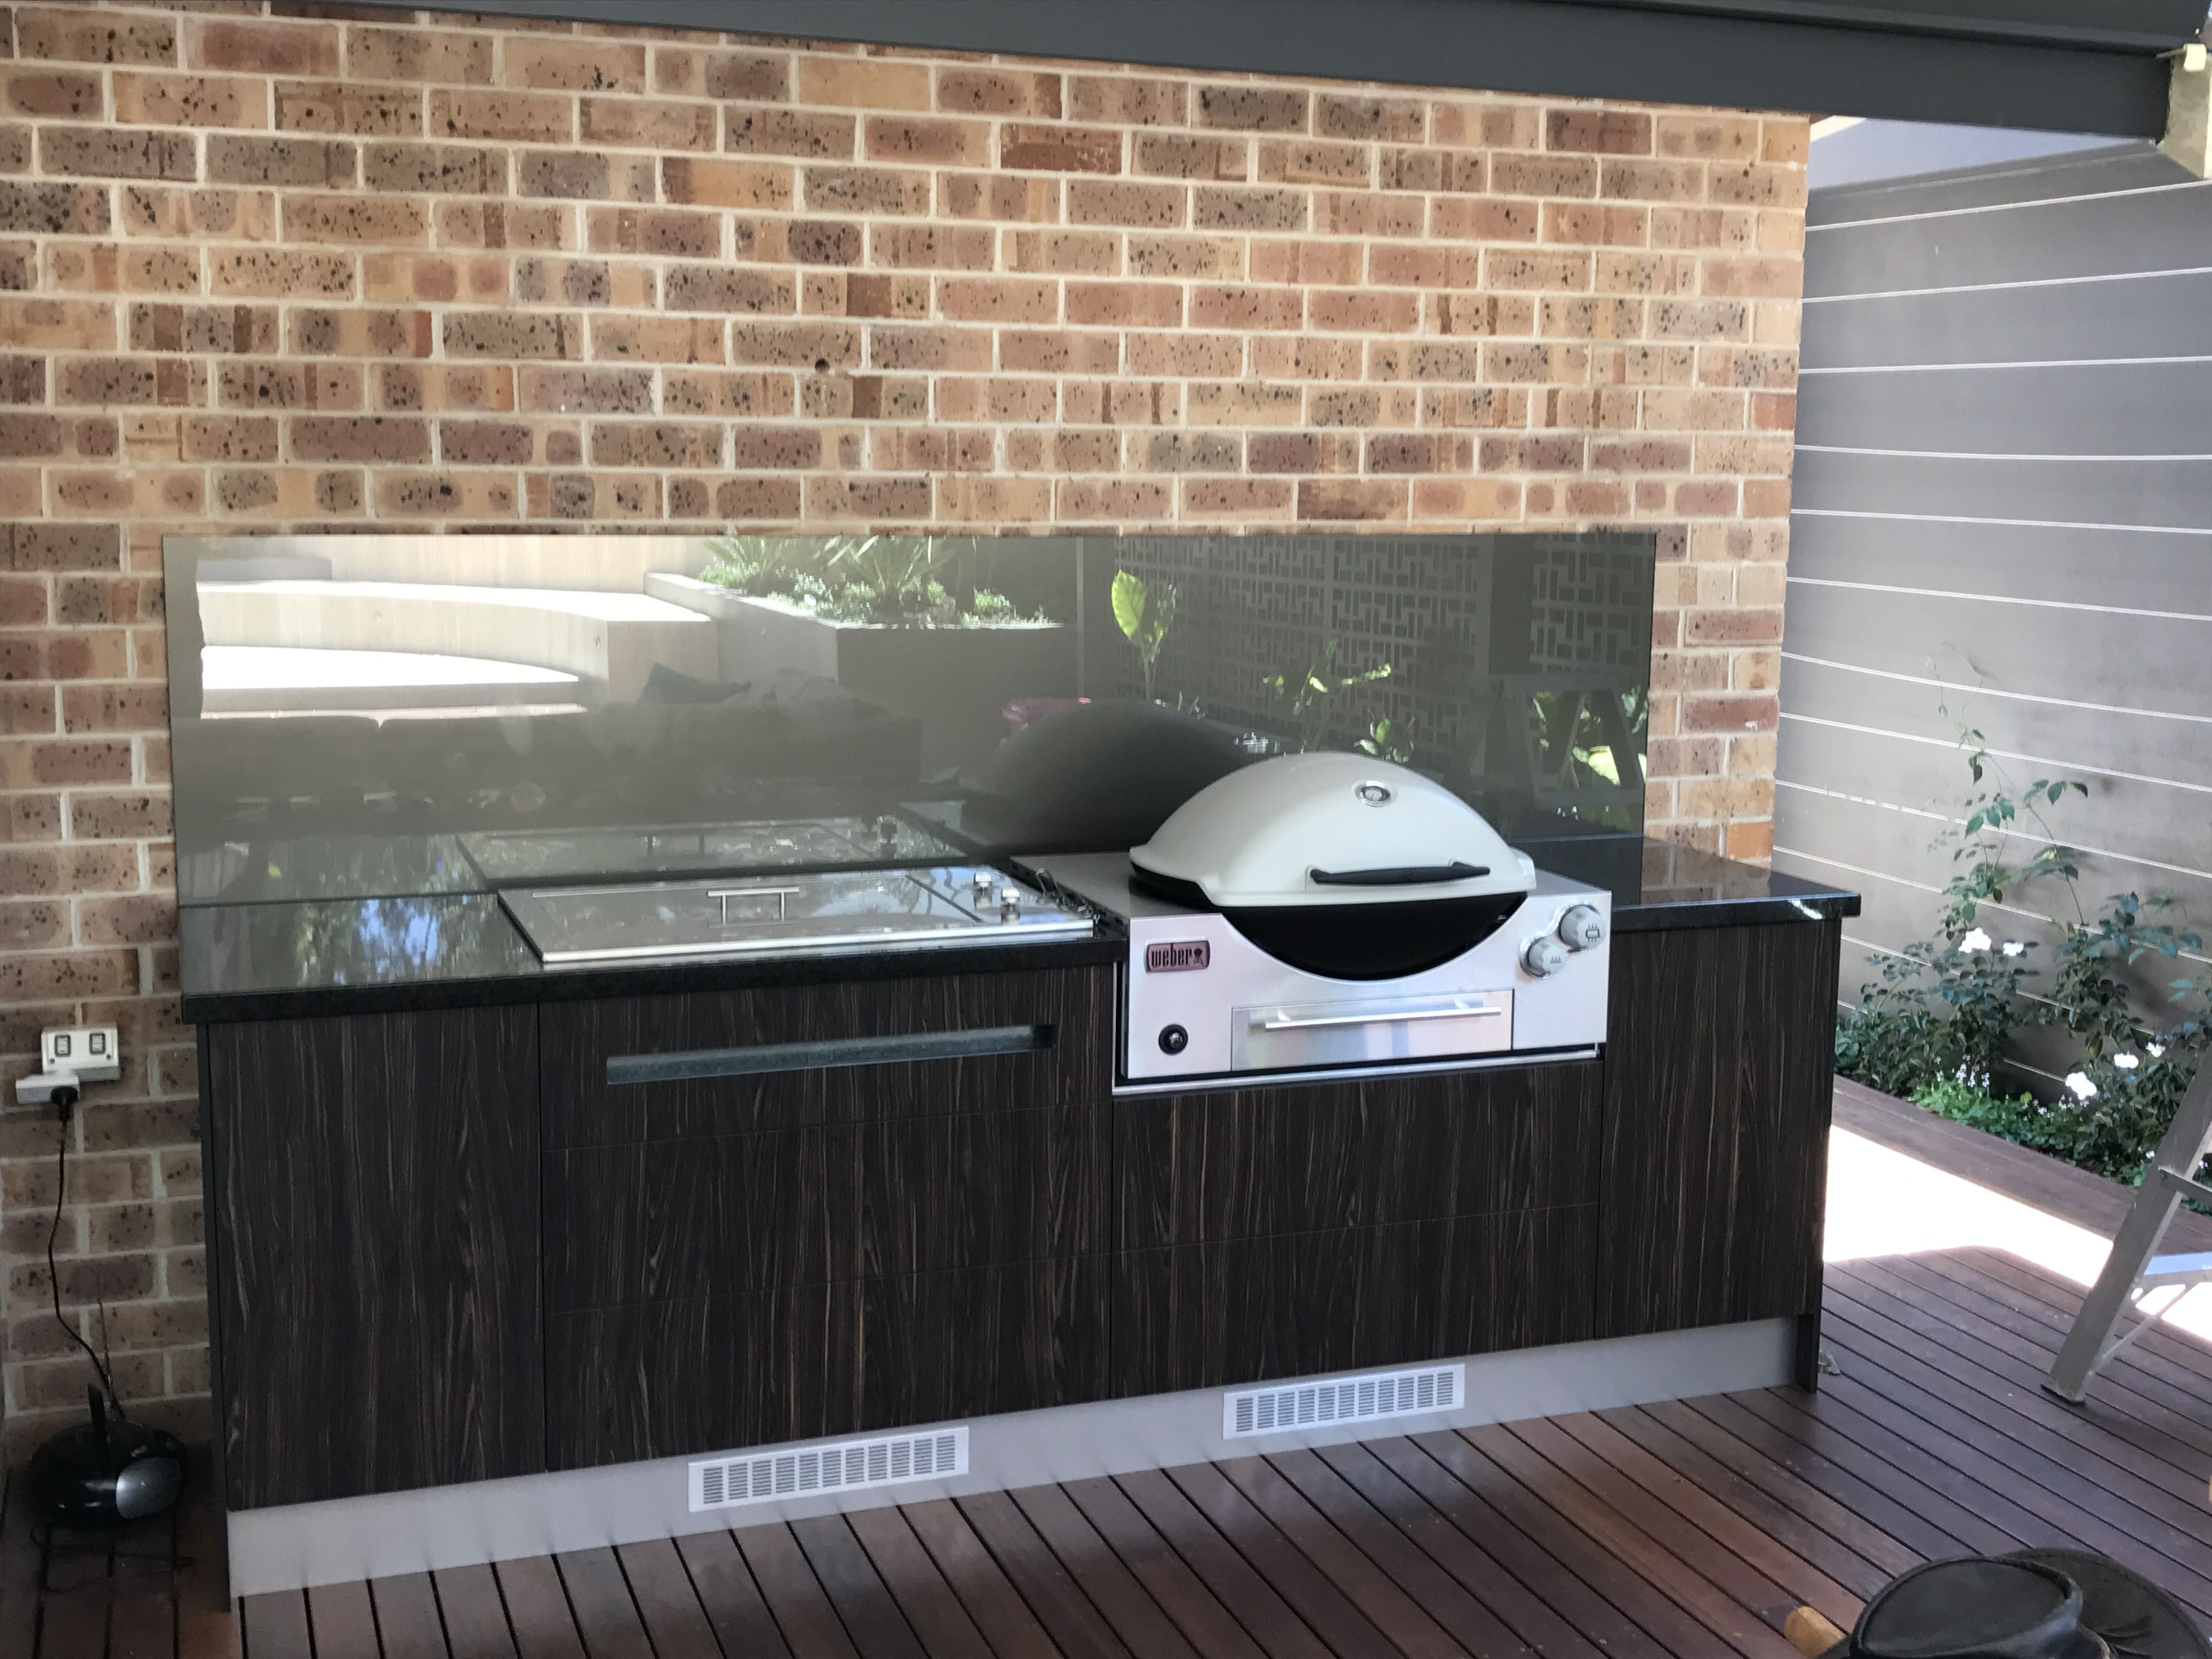 Check out the Pyro Designs outdoor kitchens gallery for inspiration for  your outdoor kitchen design project.